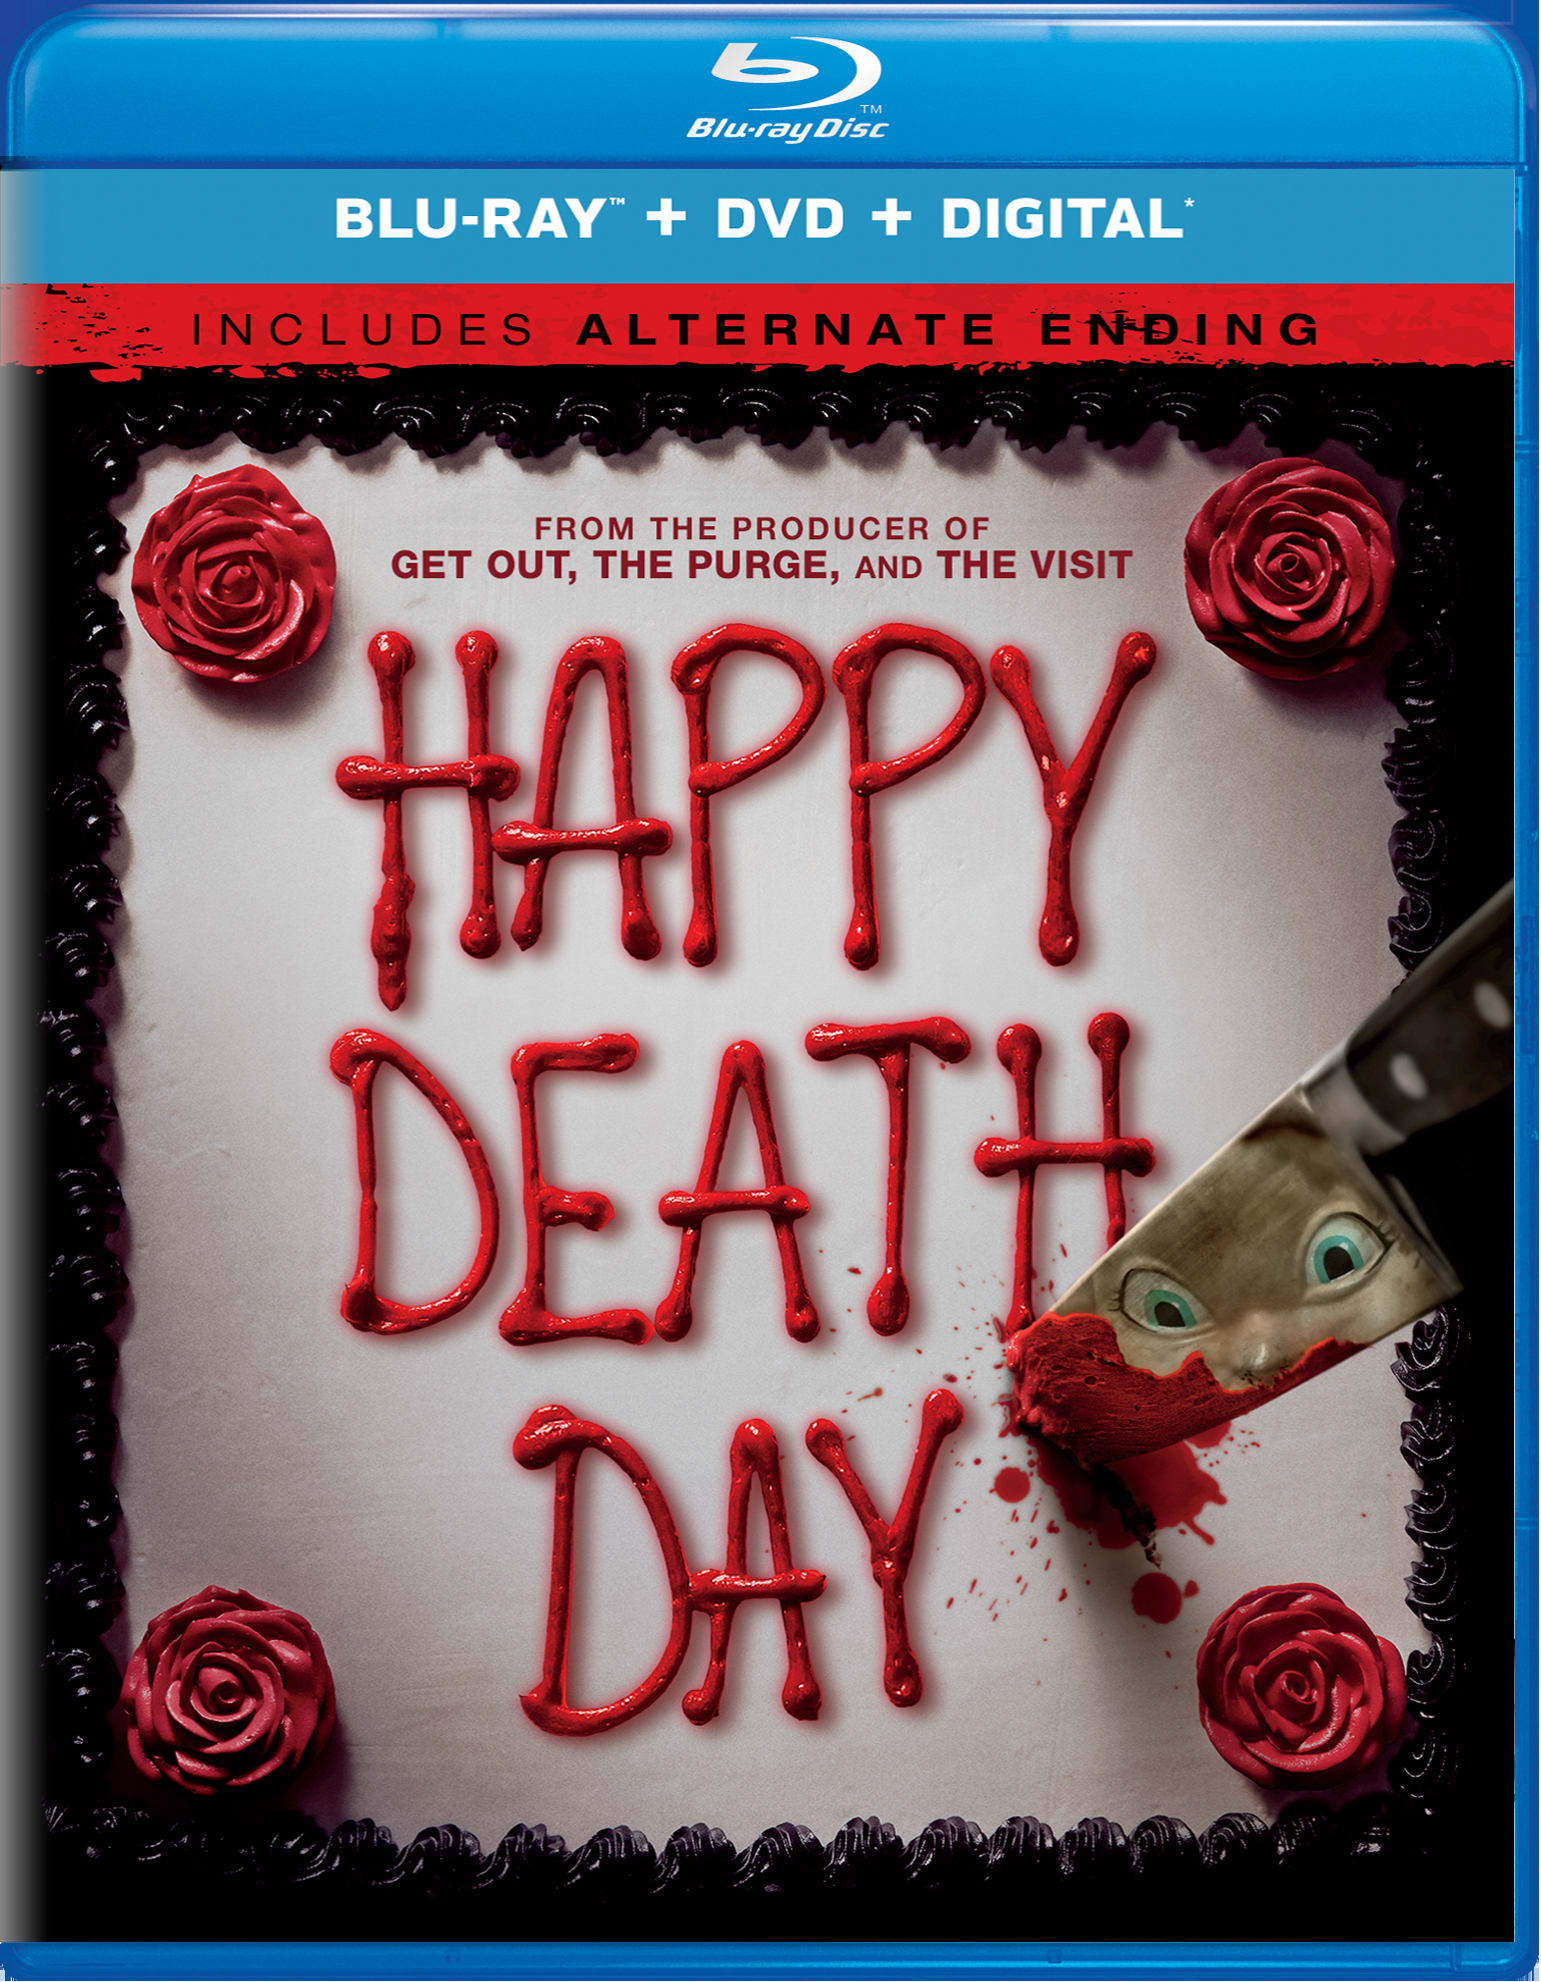 Happy Death Day (DVD + Digital) [Blu-ray]